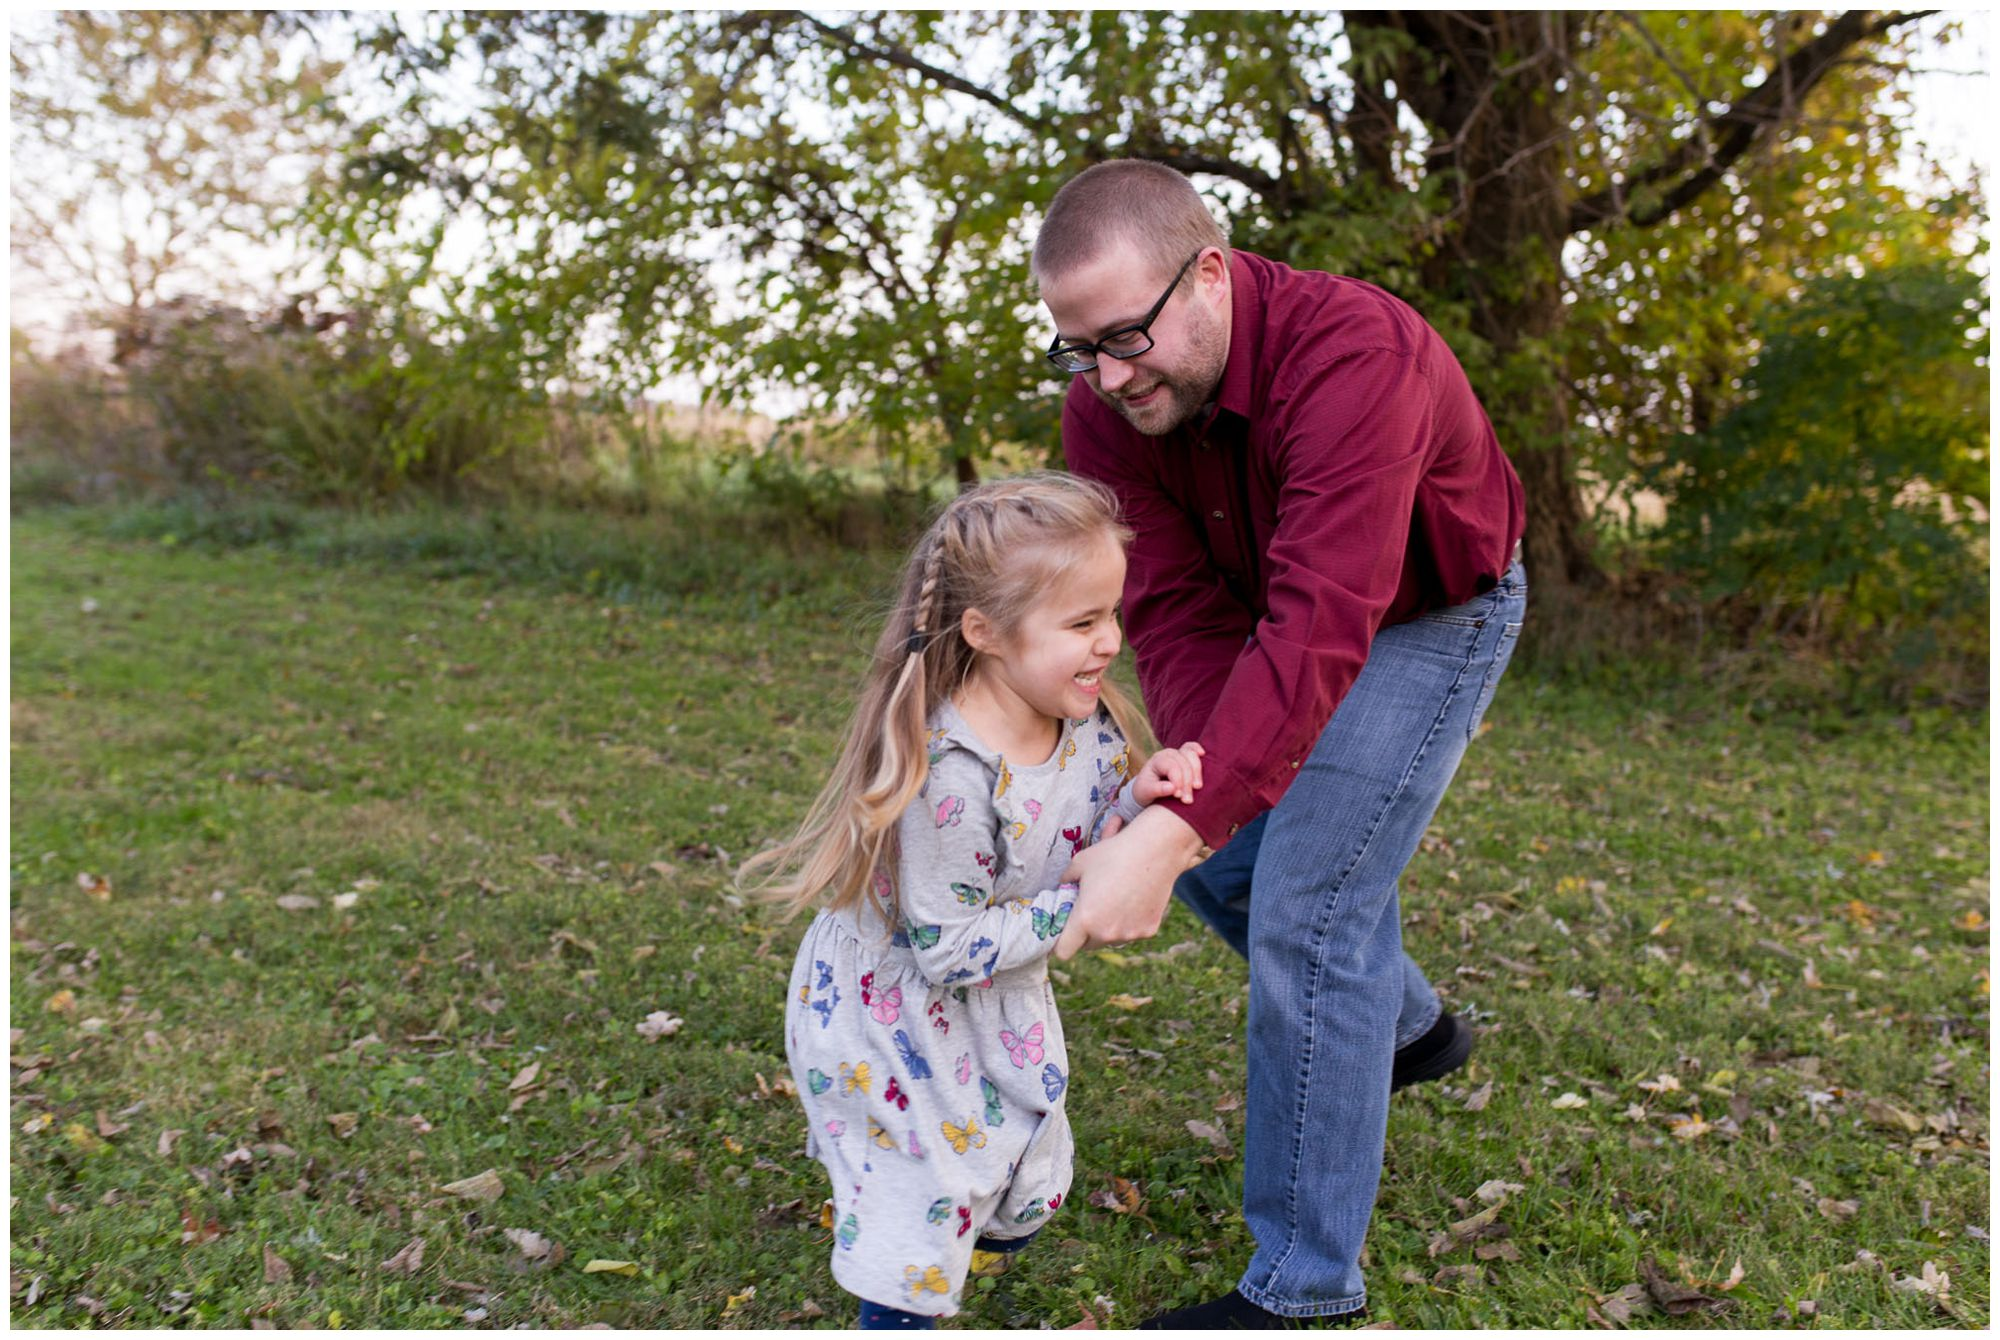 dad chases daughter around during Kokomo family session at Wildkat Creek Reservoir Park